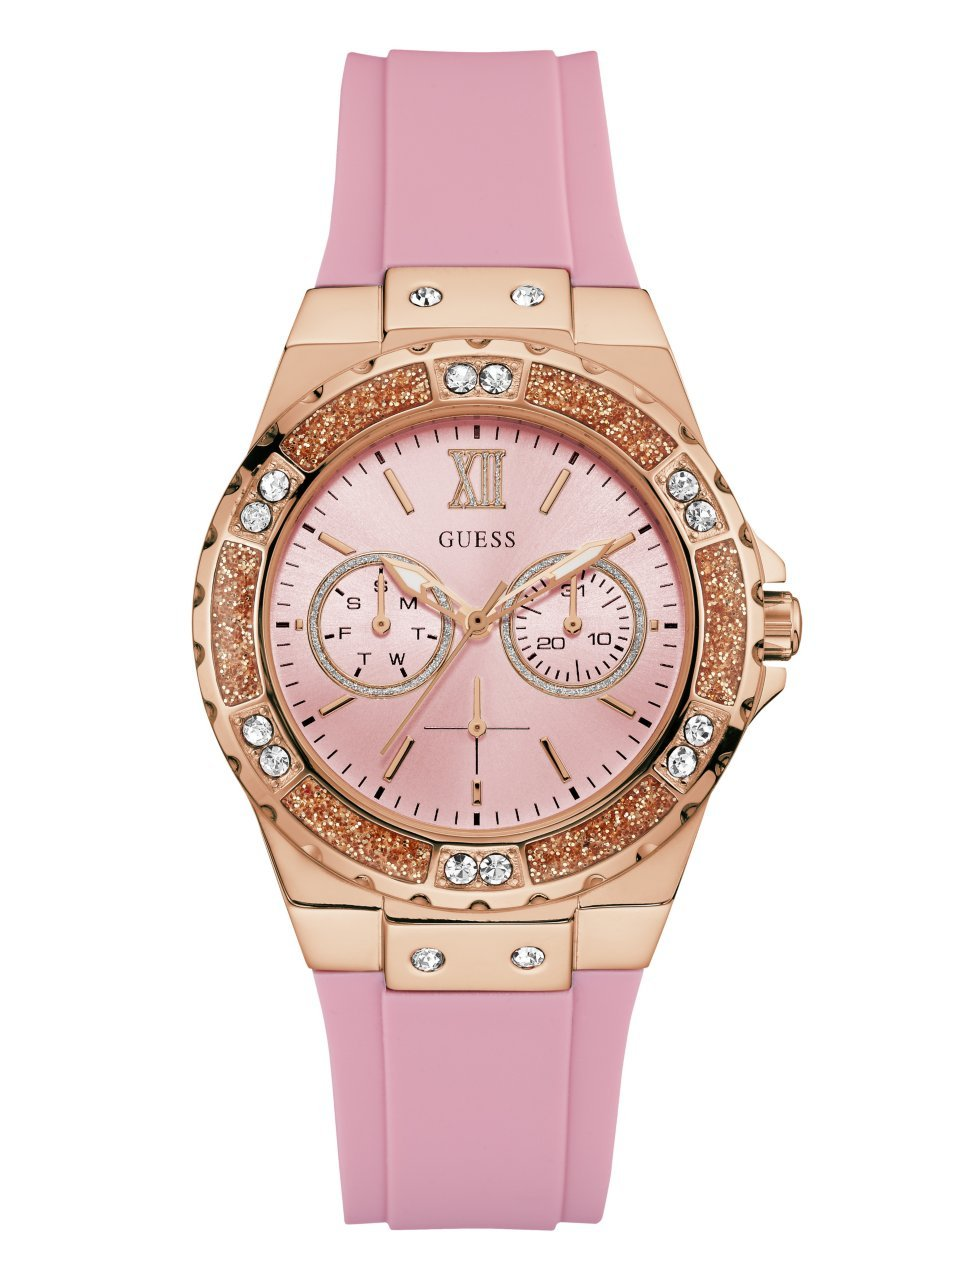 Guess Women's Stainless Steel Silicone Crystal Accented Watch, Color Pink/Rose Gold-Tone (Model: U1053L3)